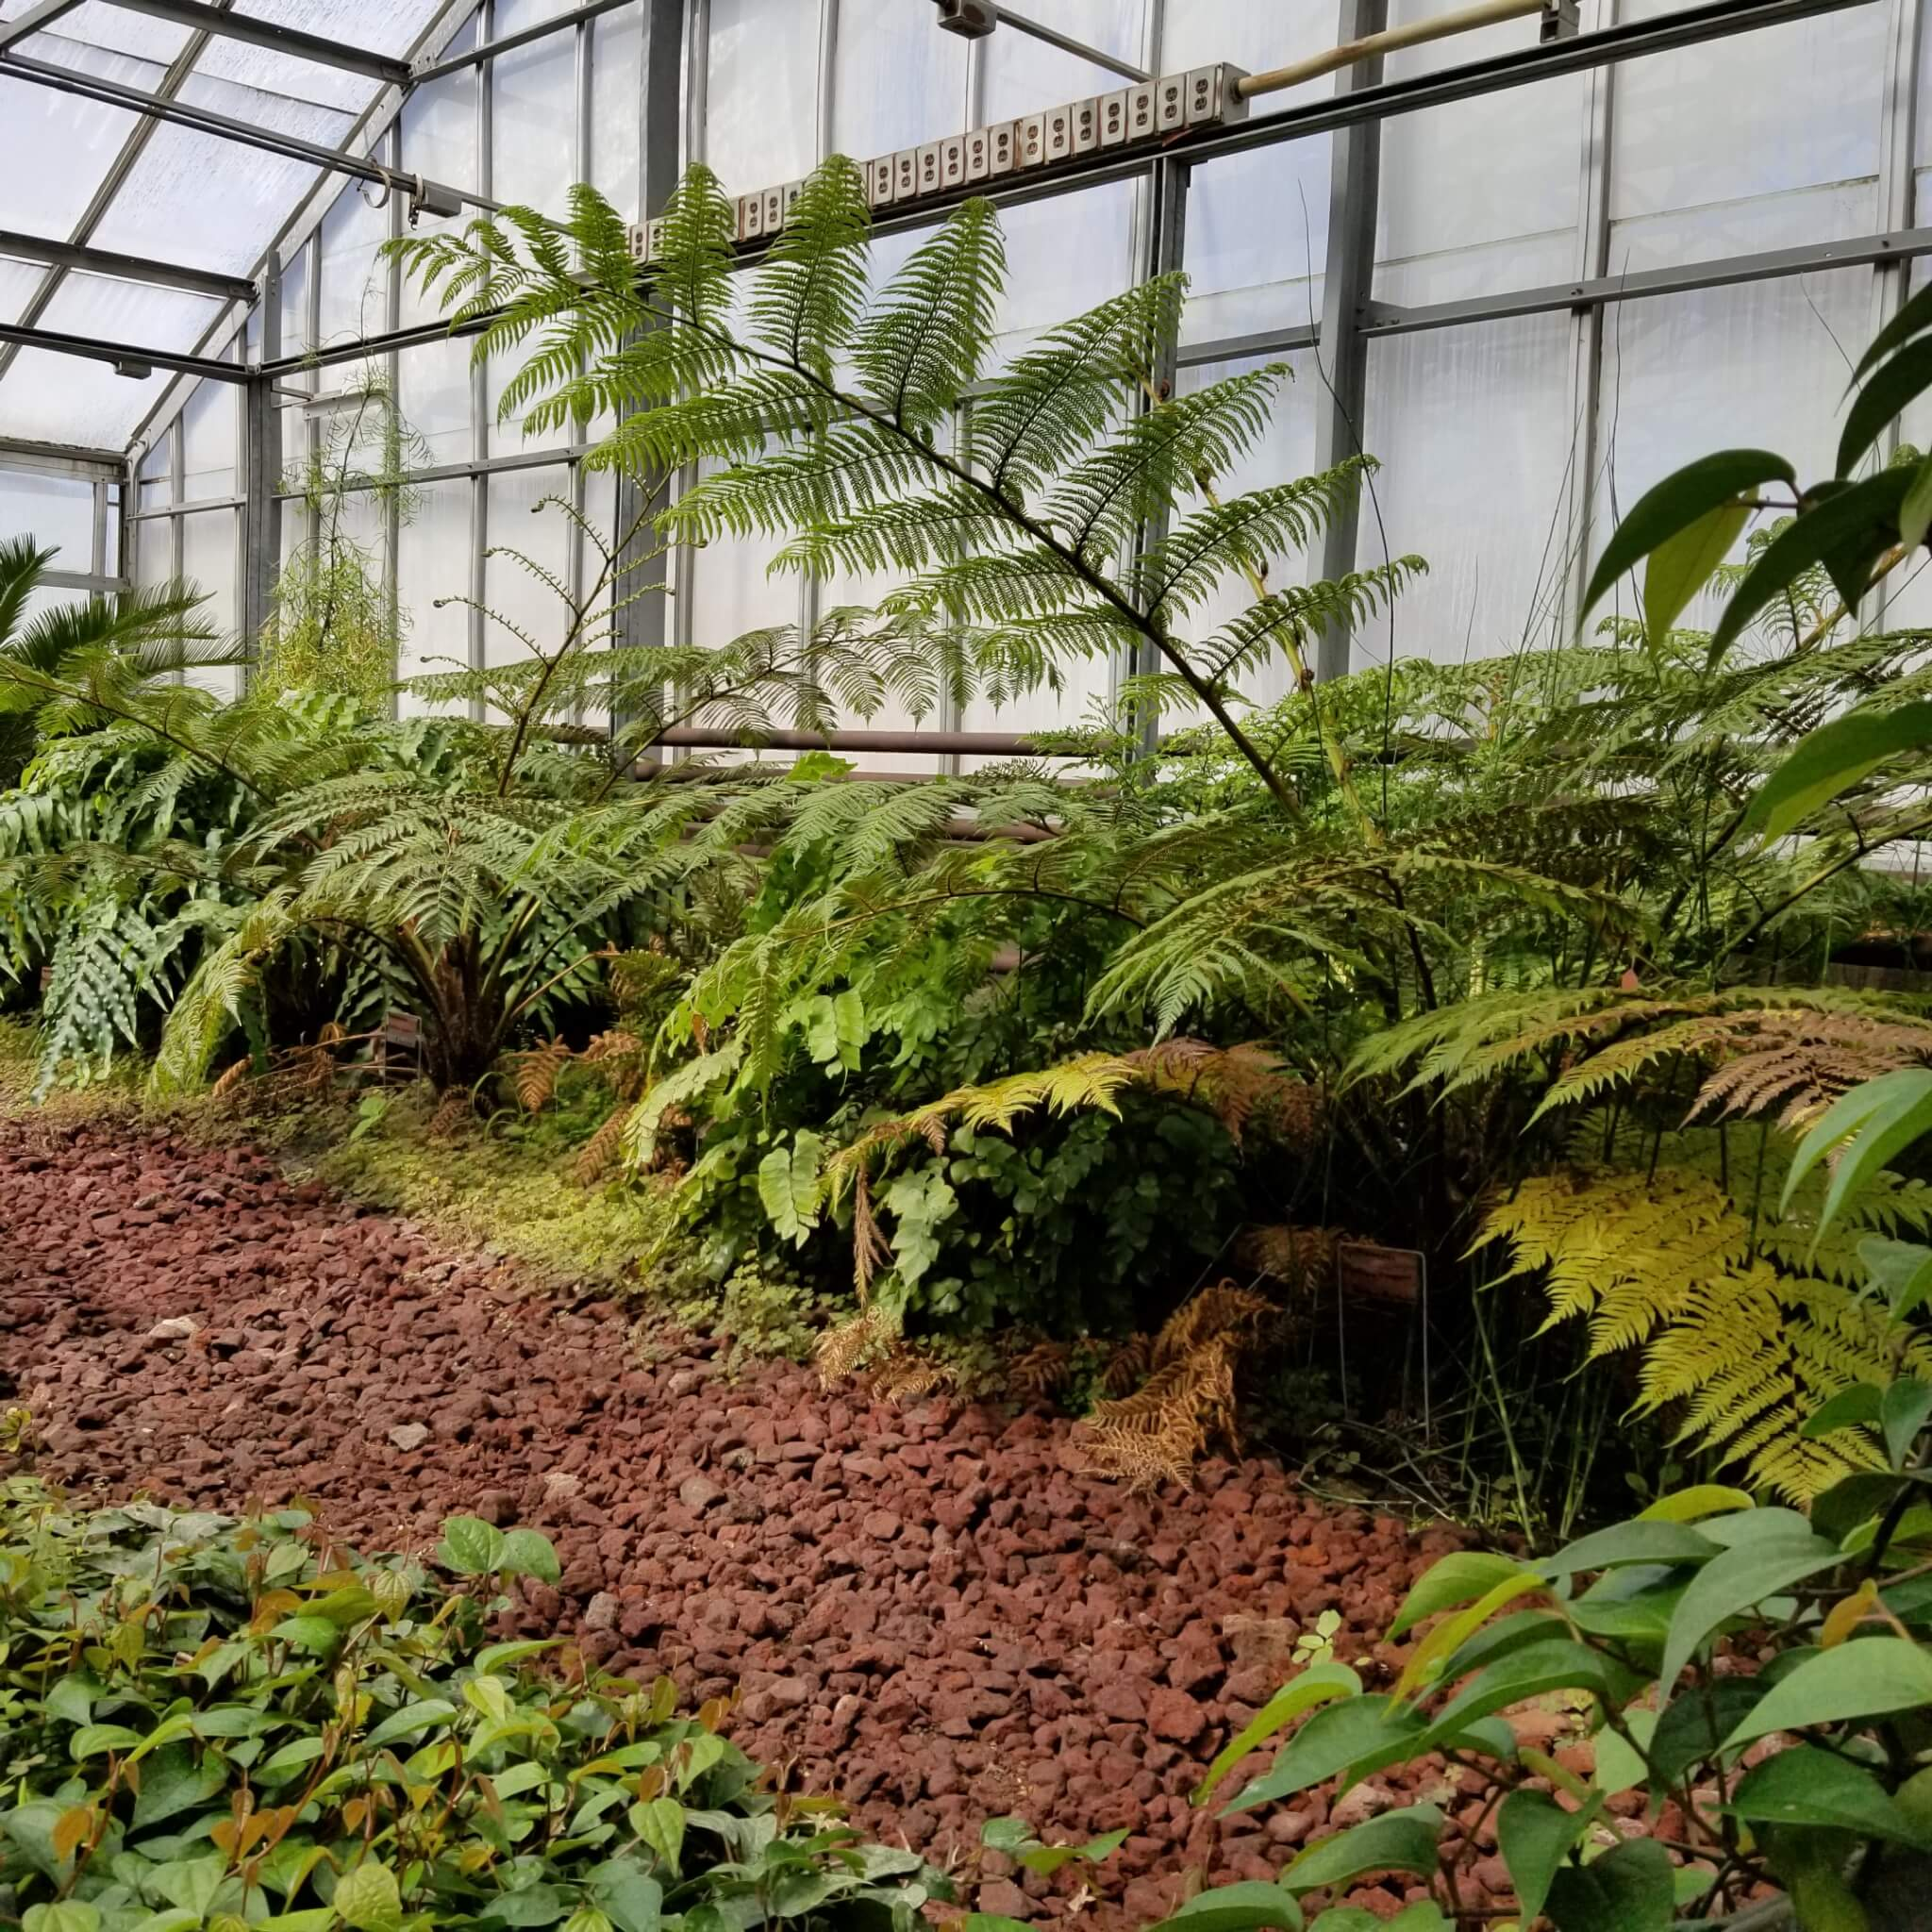 Scott McAdam tends to some of the most unusual and rare plants in Purdue's greenhouses.